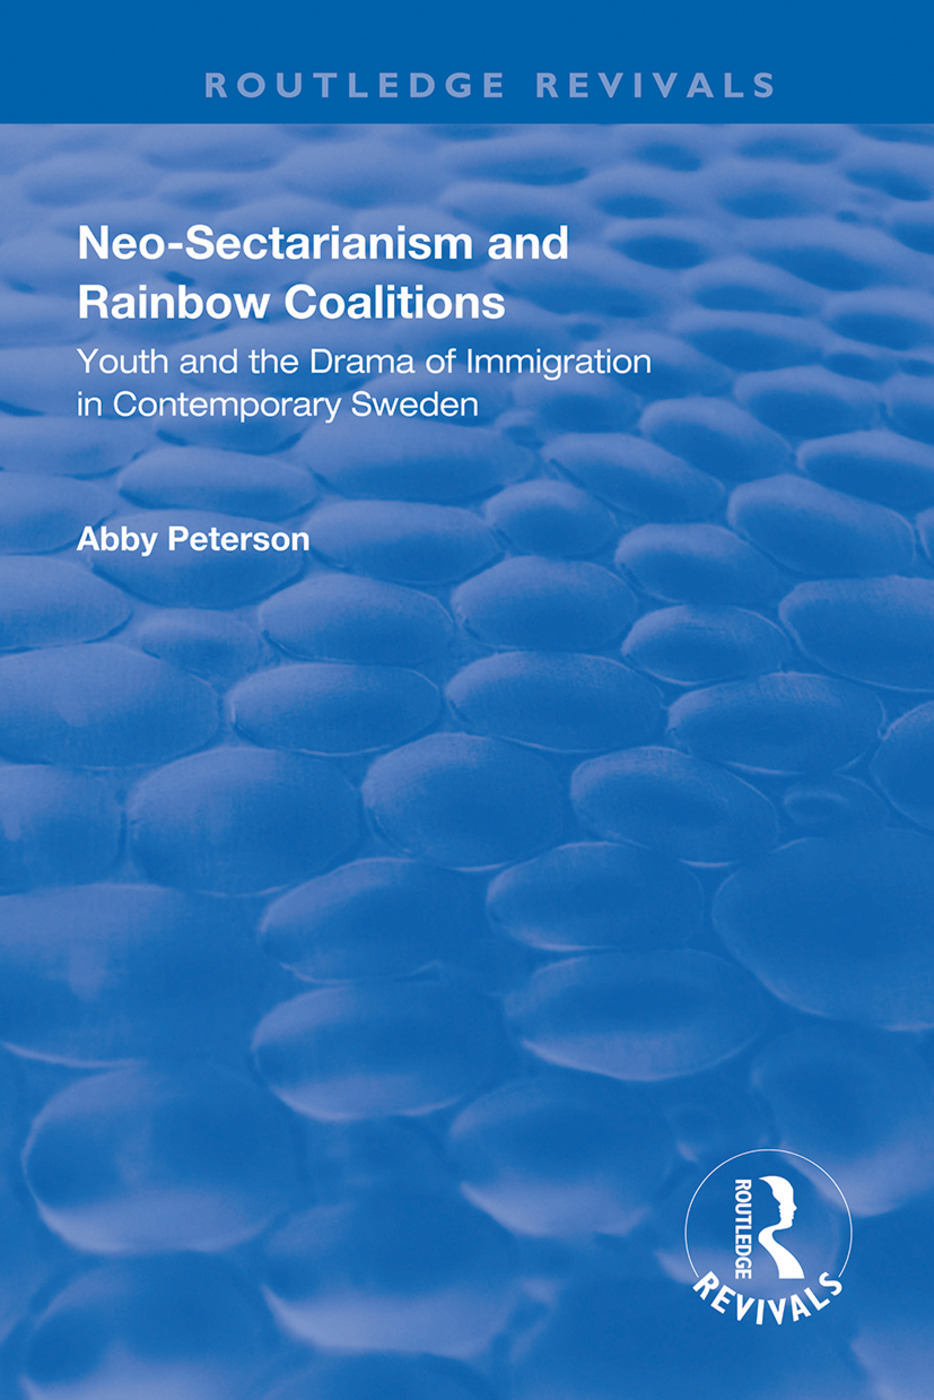 Neo-sectarianism and Rainbow Coalitions